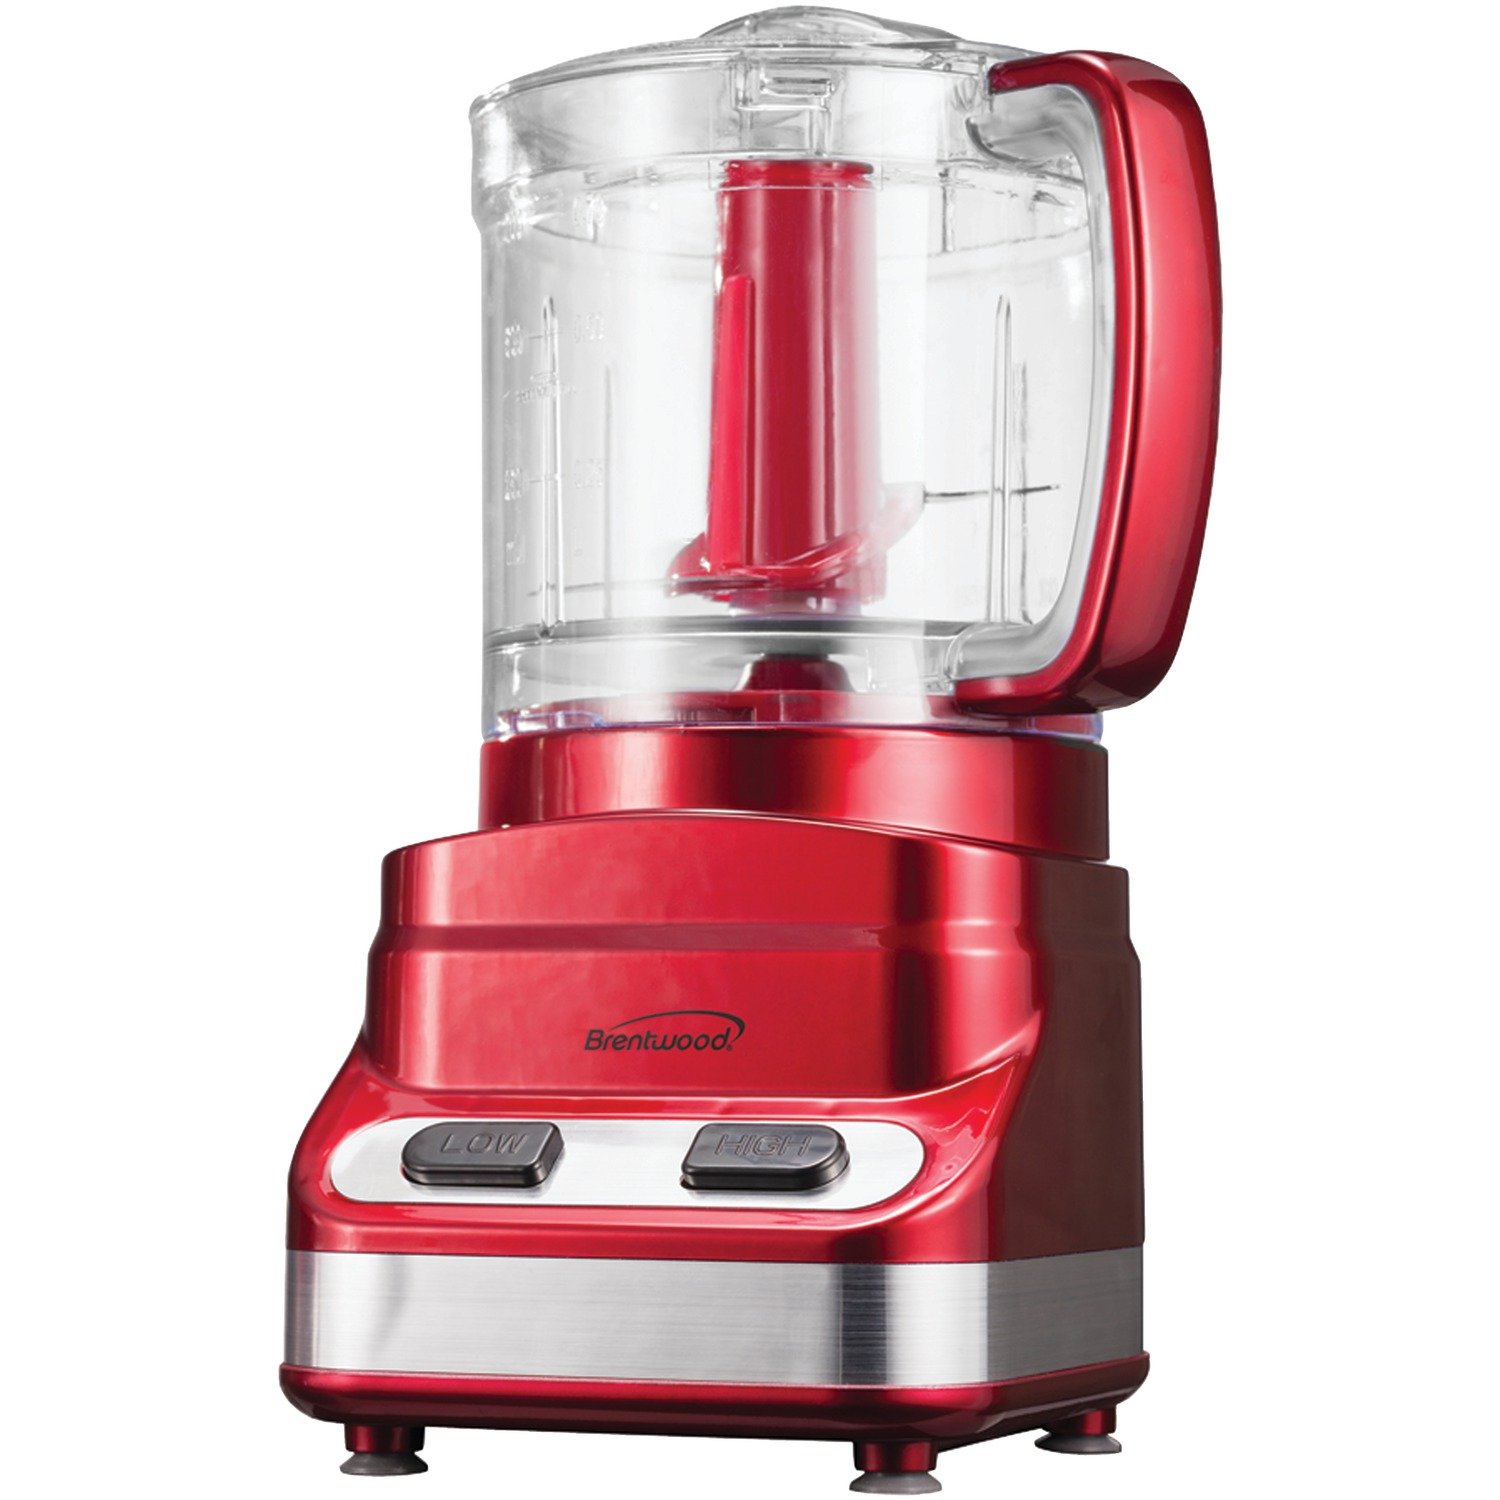 BrentwoodFP-5483CupMiniFoodProcessor,Red